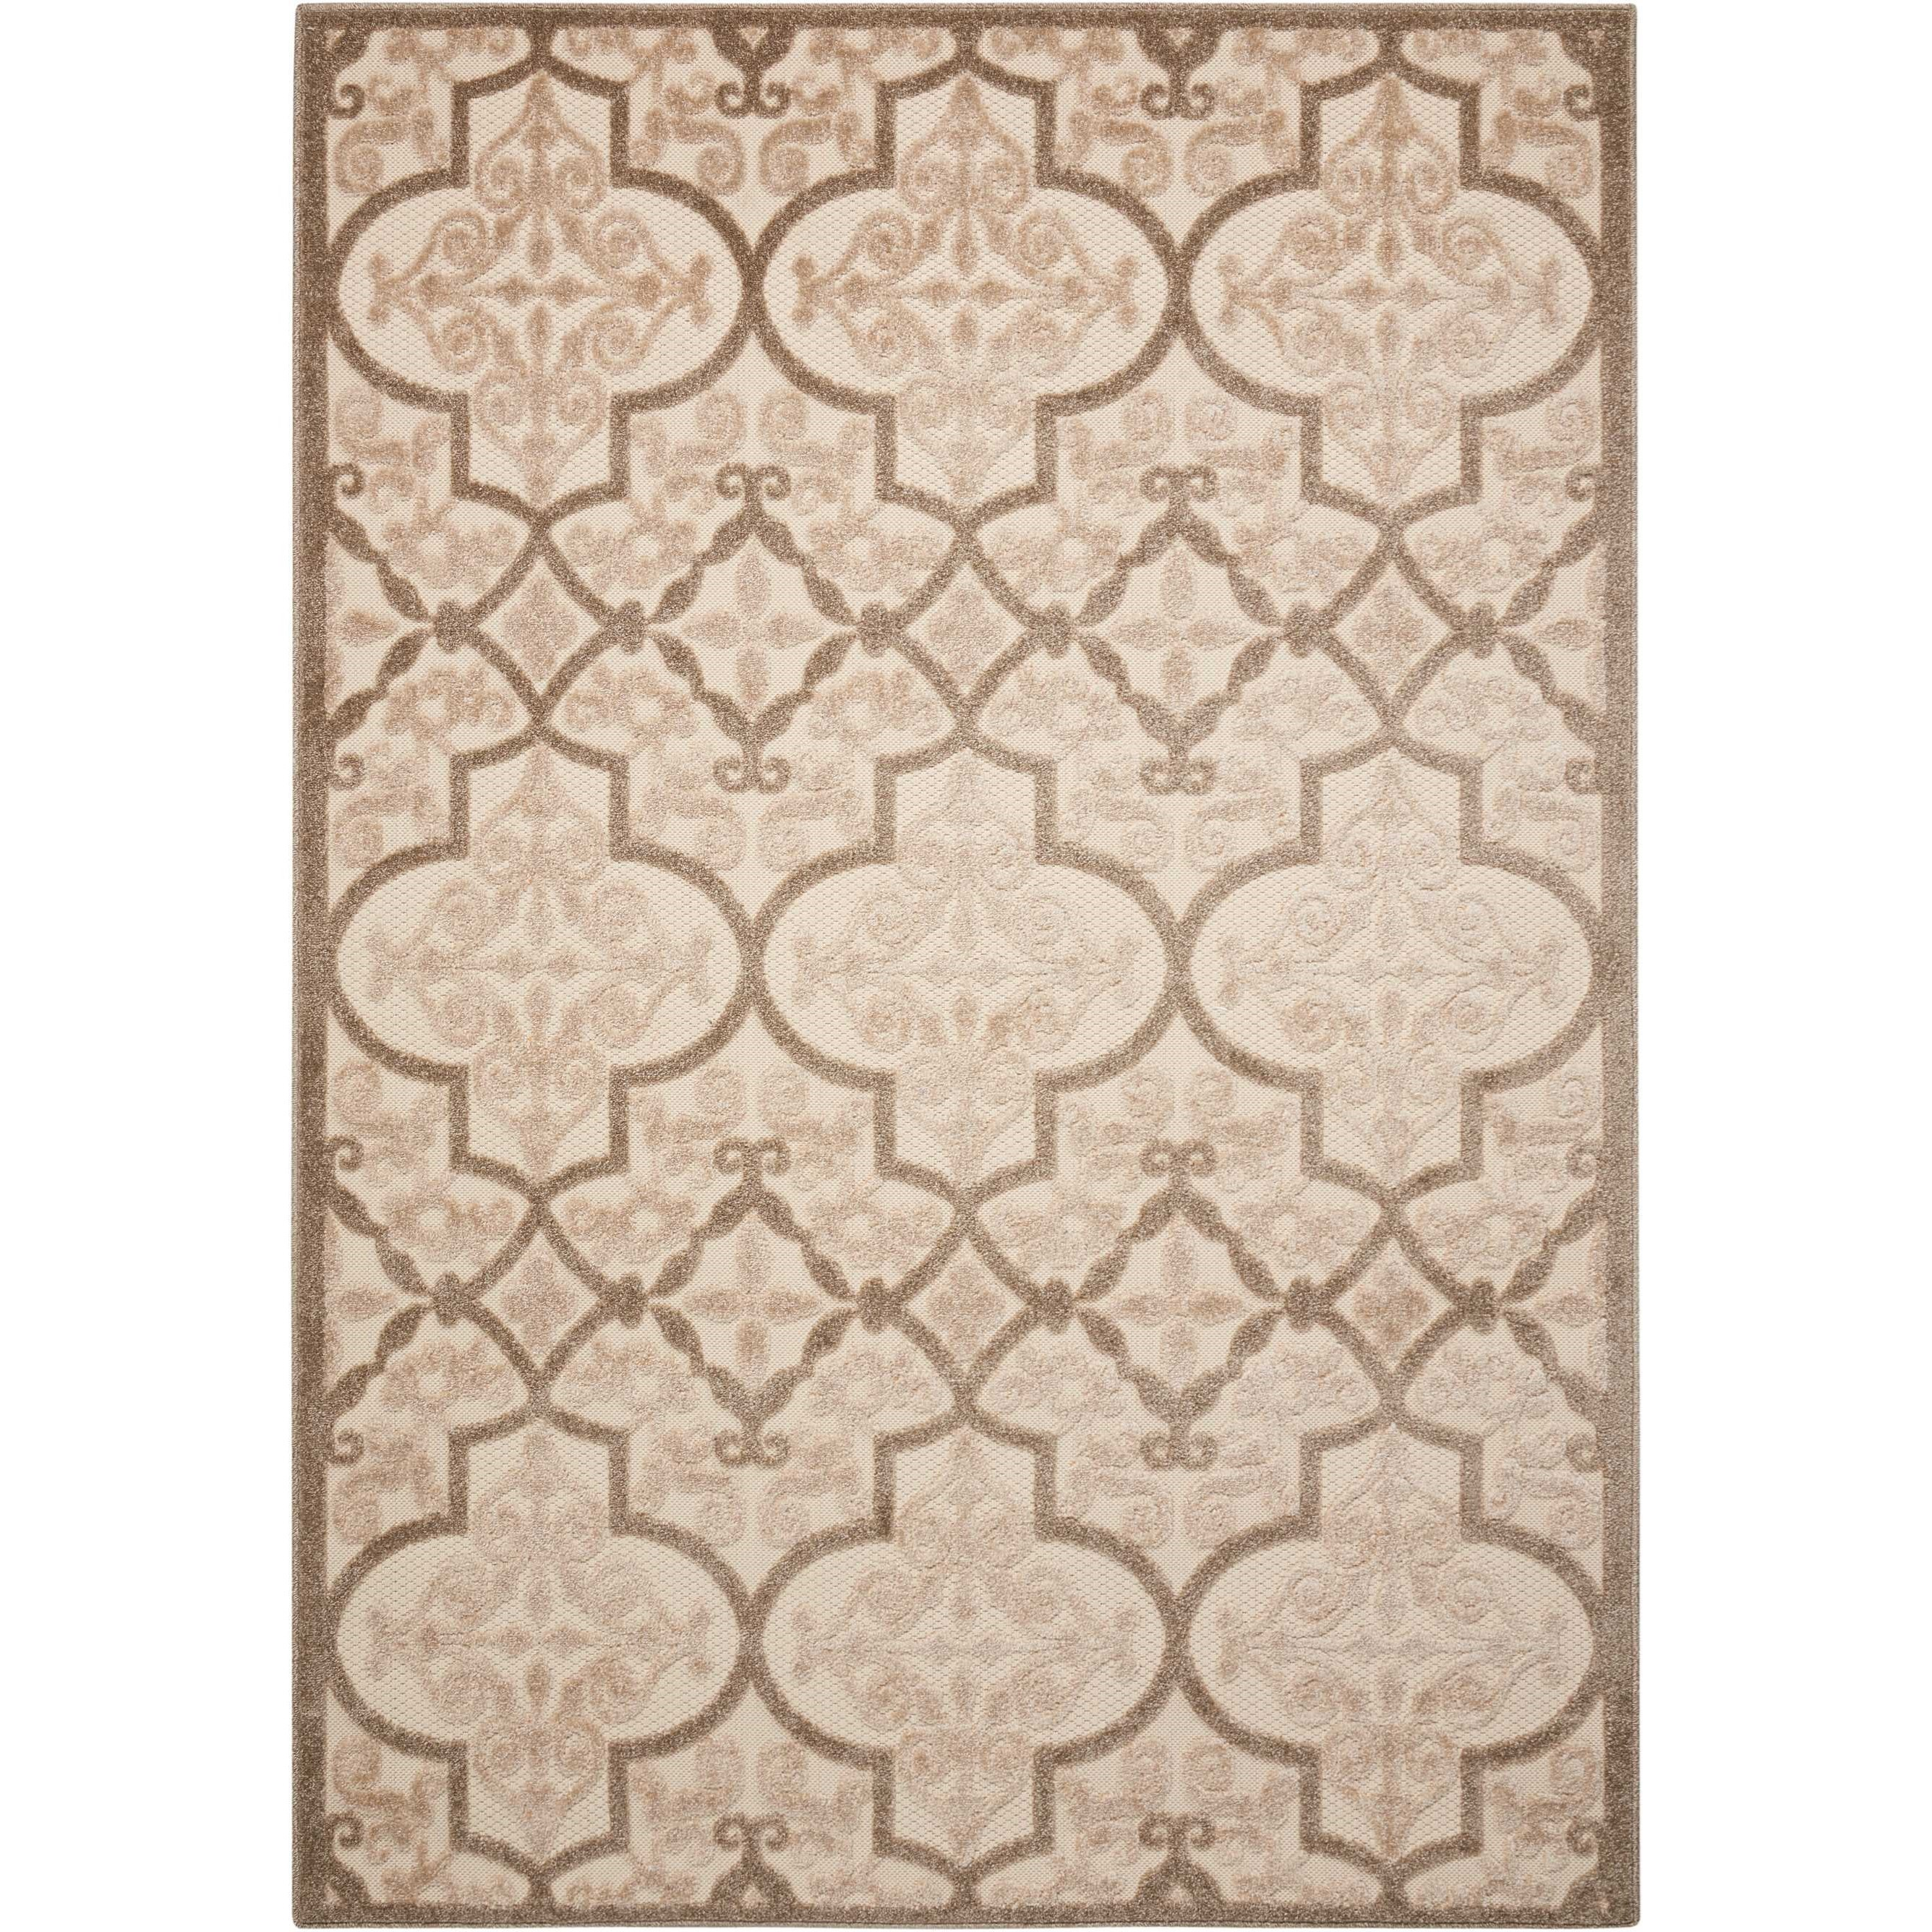 "Aloha 7'10"" X 10'6"" Cream Rug by Nourison at Sprintz Furniture"